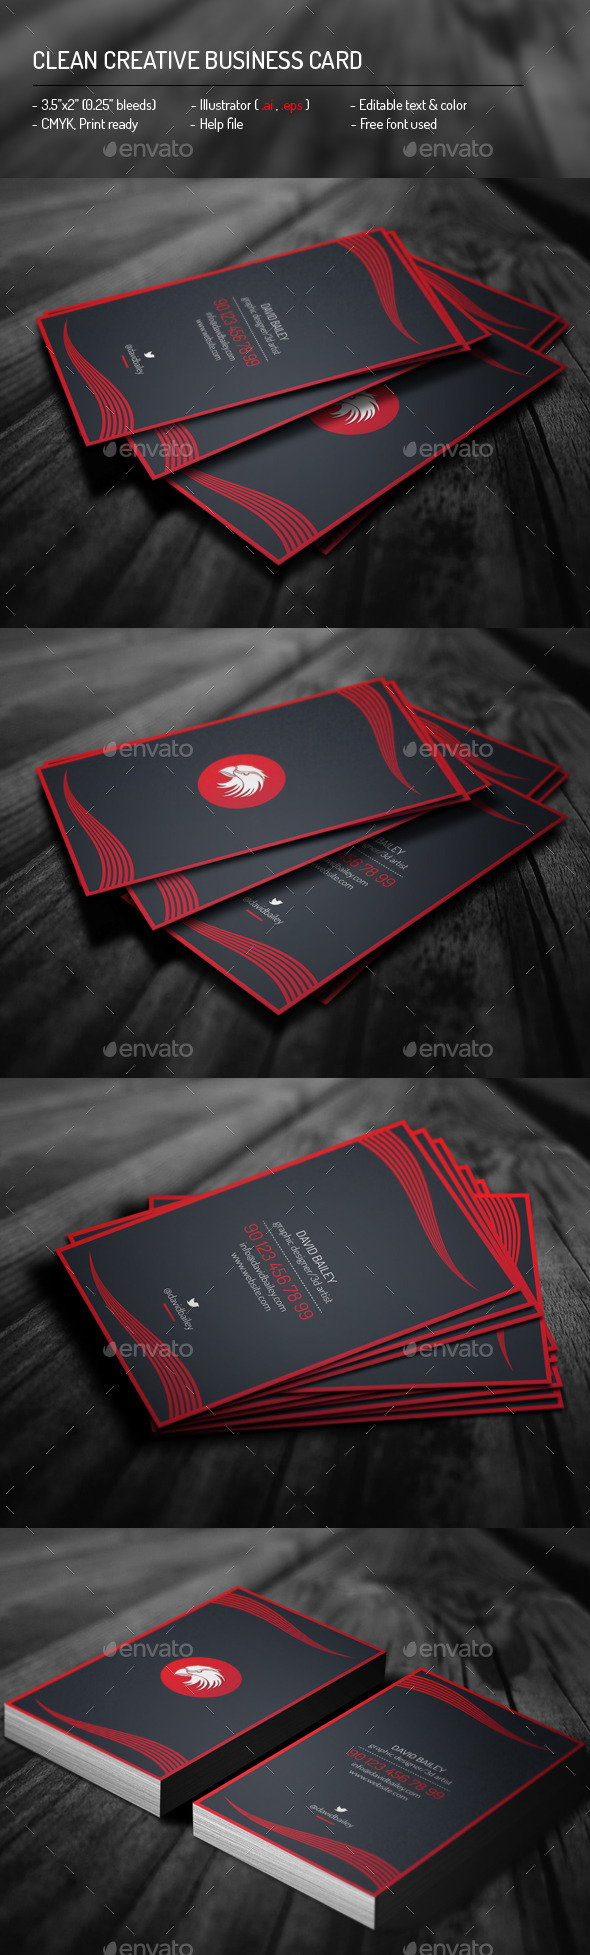 Clean Creative Business Card - Creative Business Cards